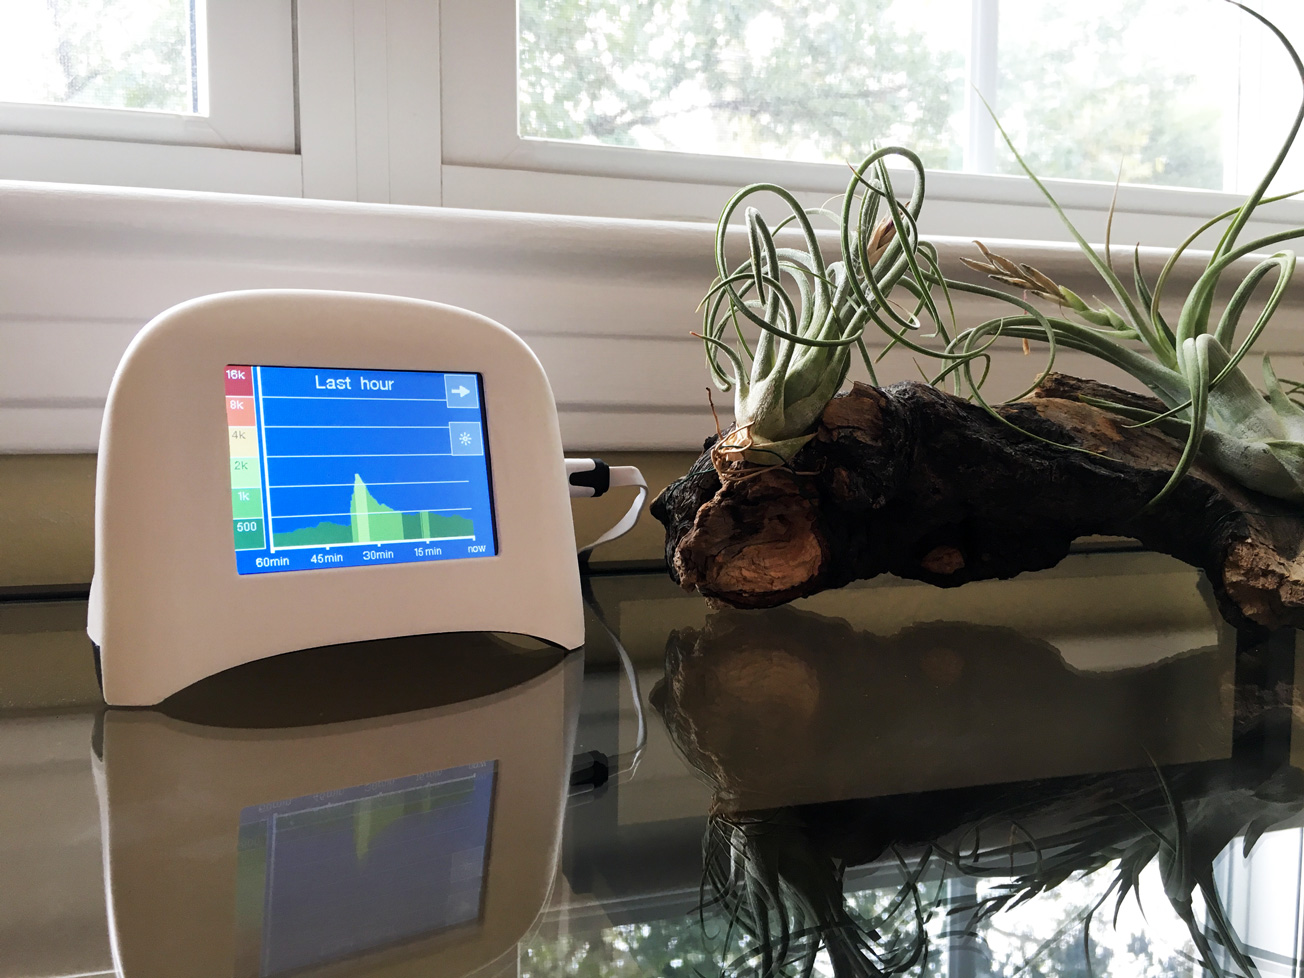 Speck indoor air quality monitor image